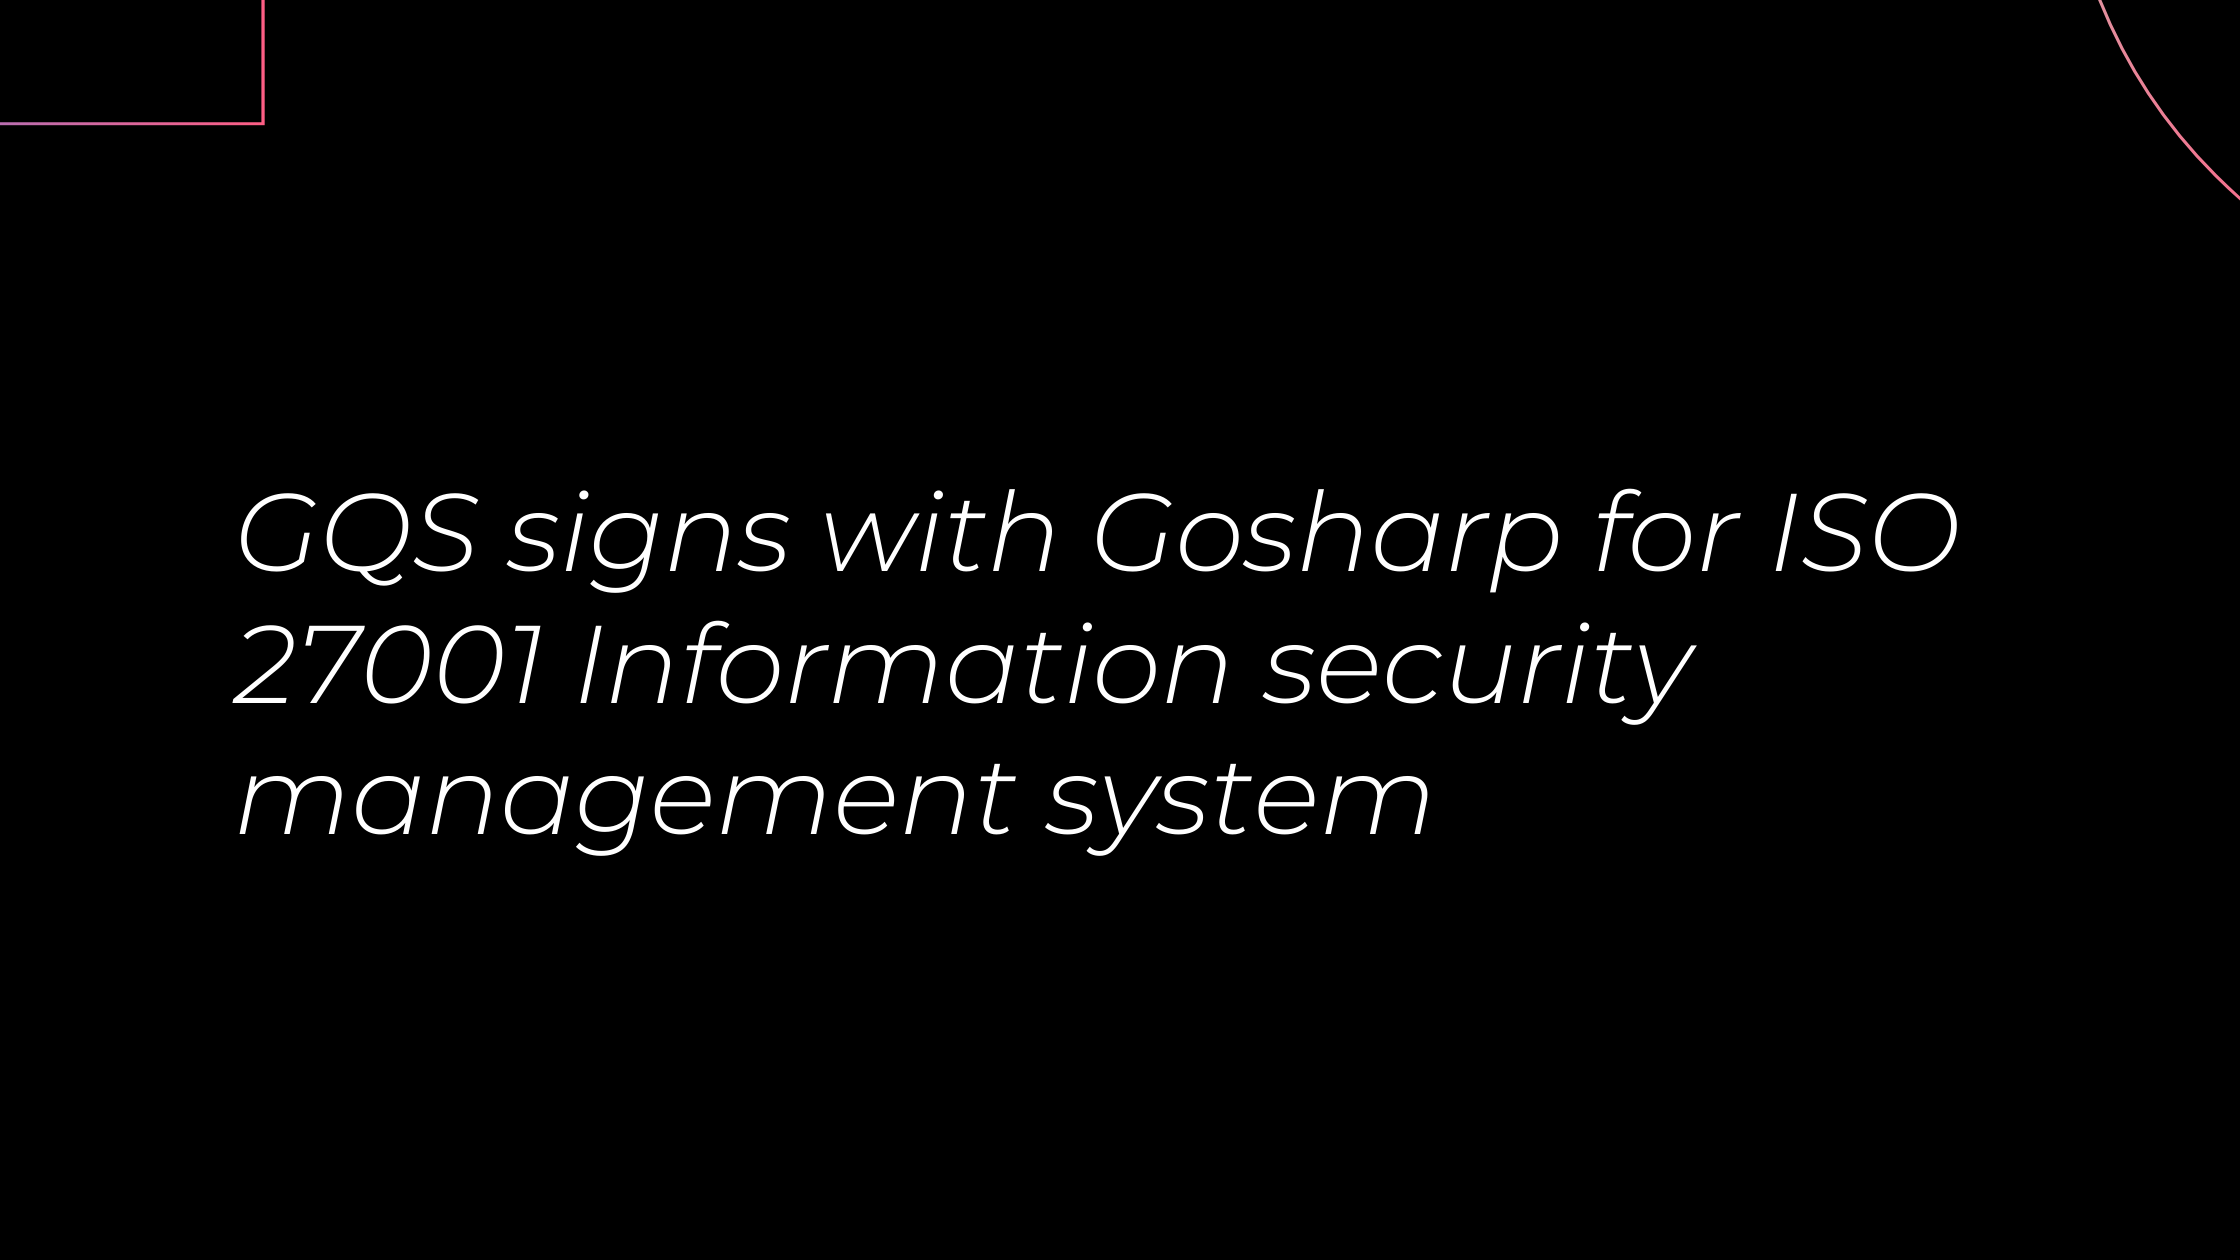 GQS signs with Gosharp for ISO 27001 Information security management system